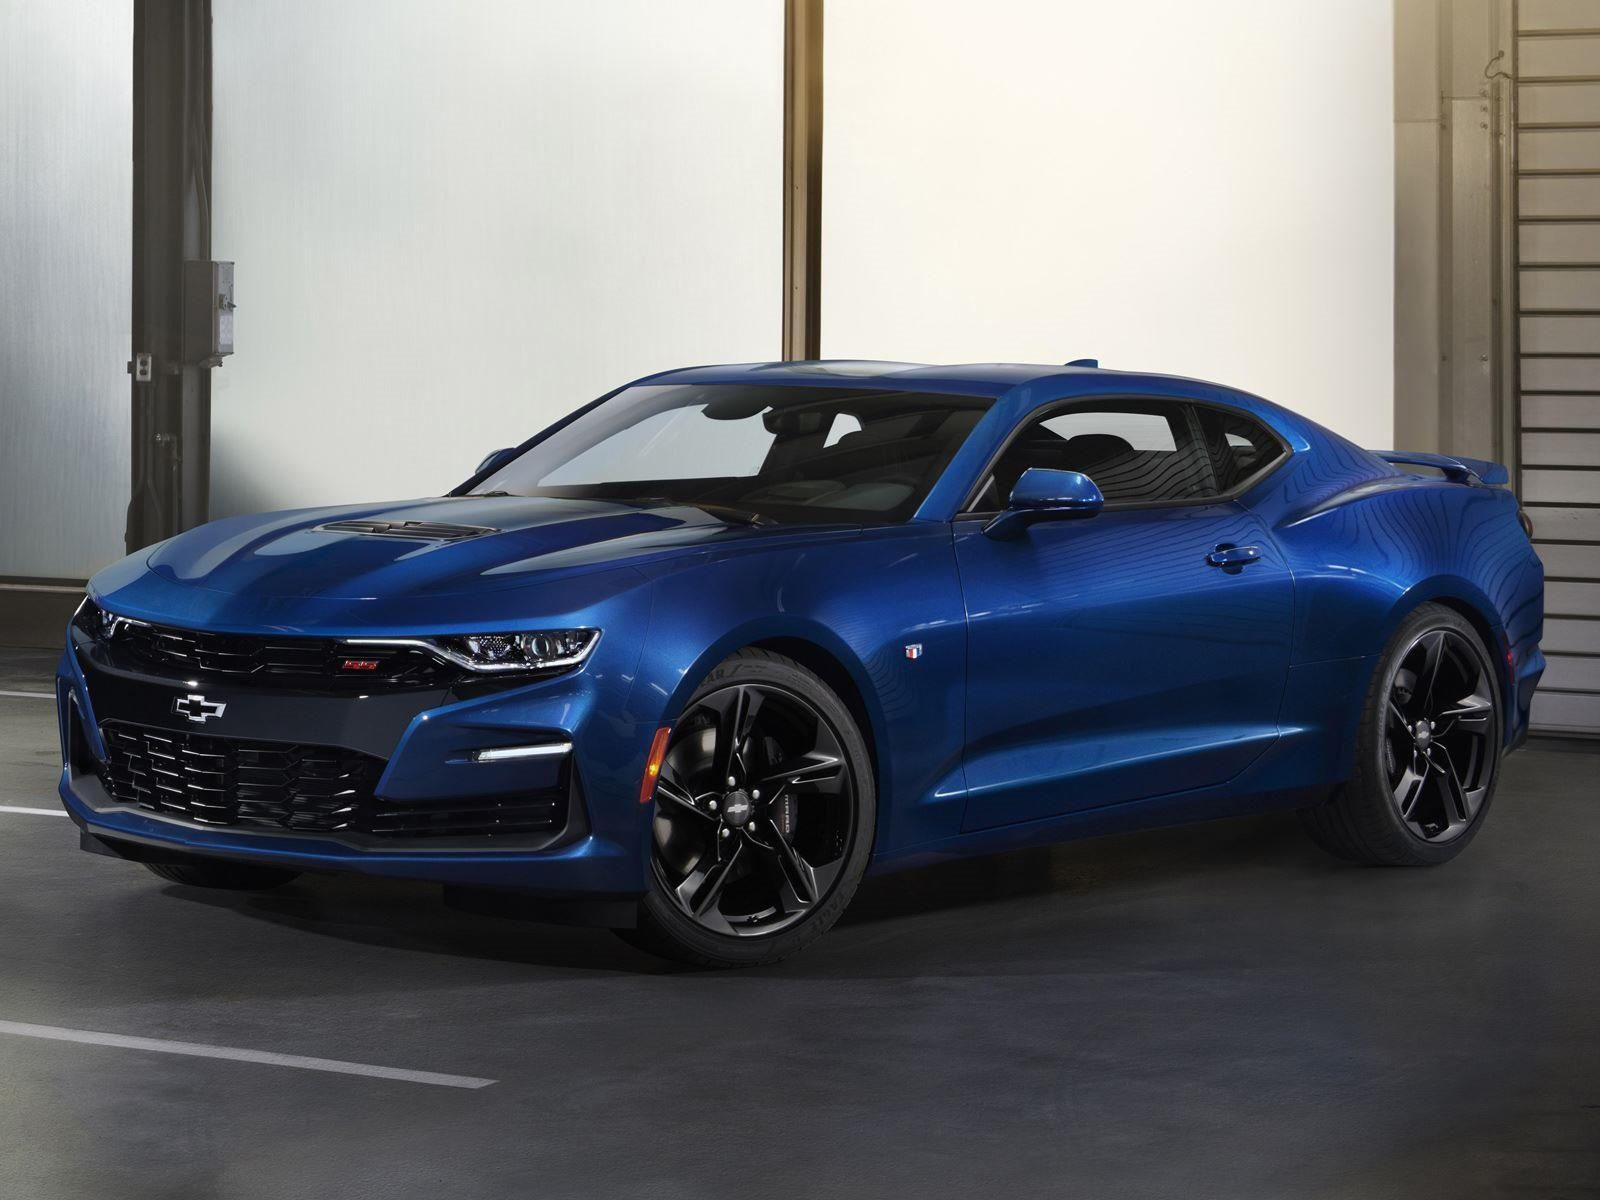 The 2019 Chevrolet Camaro Is Not Only Uglier It S Less Efficient Chevrolet Camaro Camaro 2019 Camaro